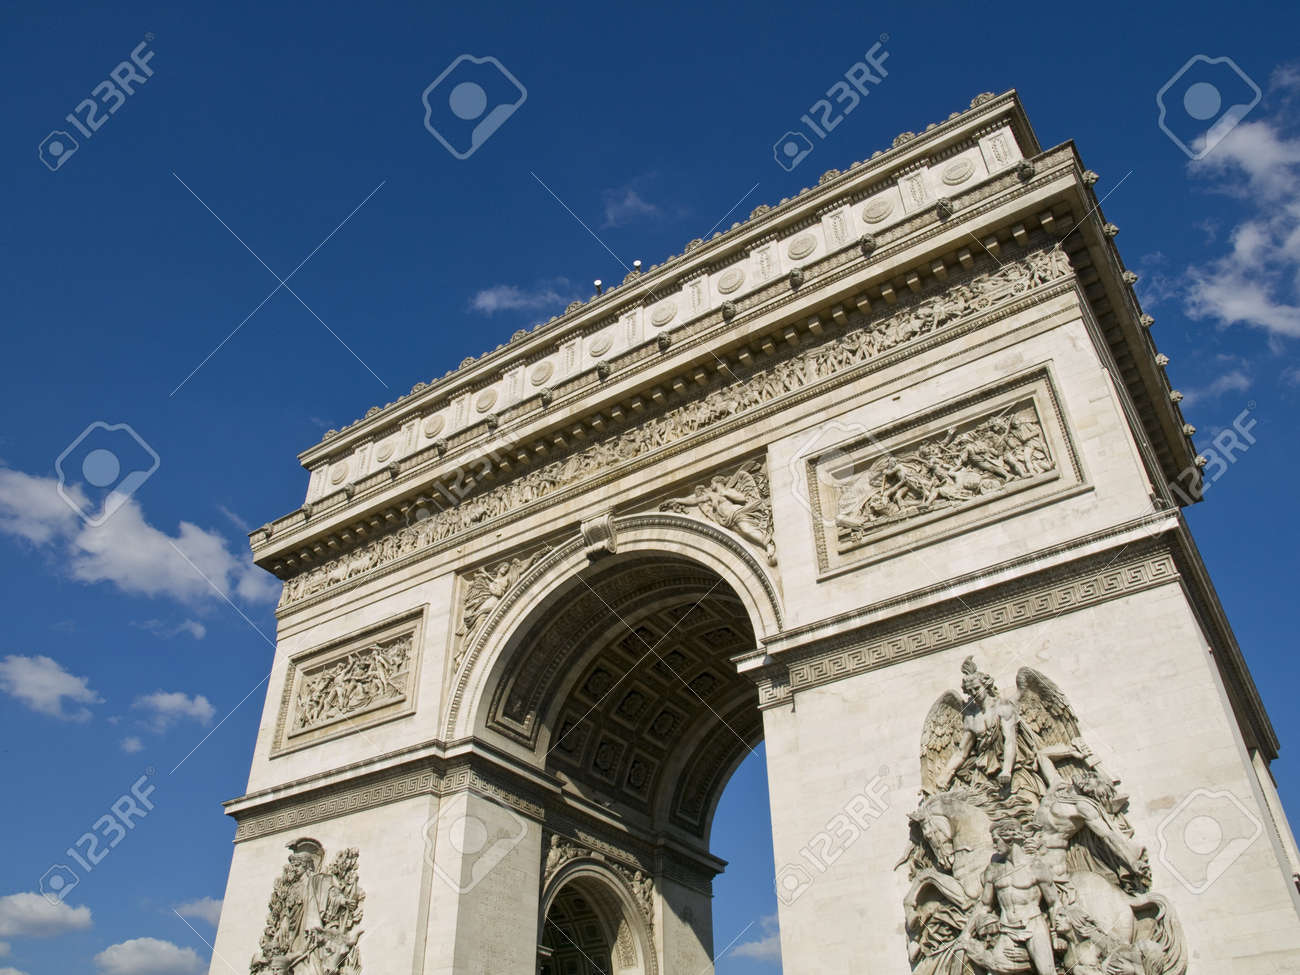 High angle view of one of the most popular monuments of France Stock Photo - 4190887